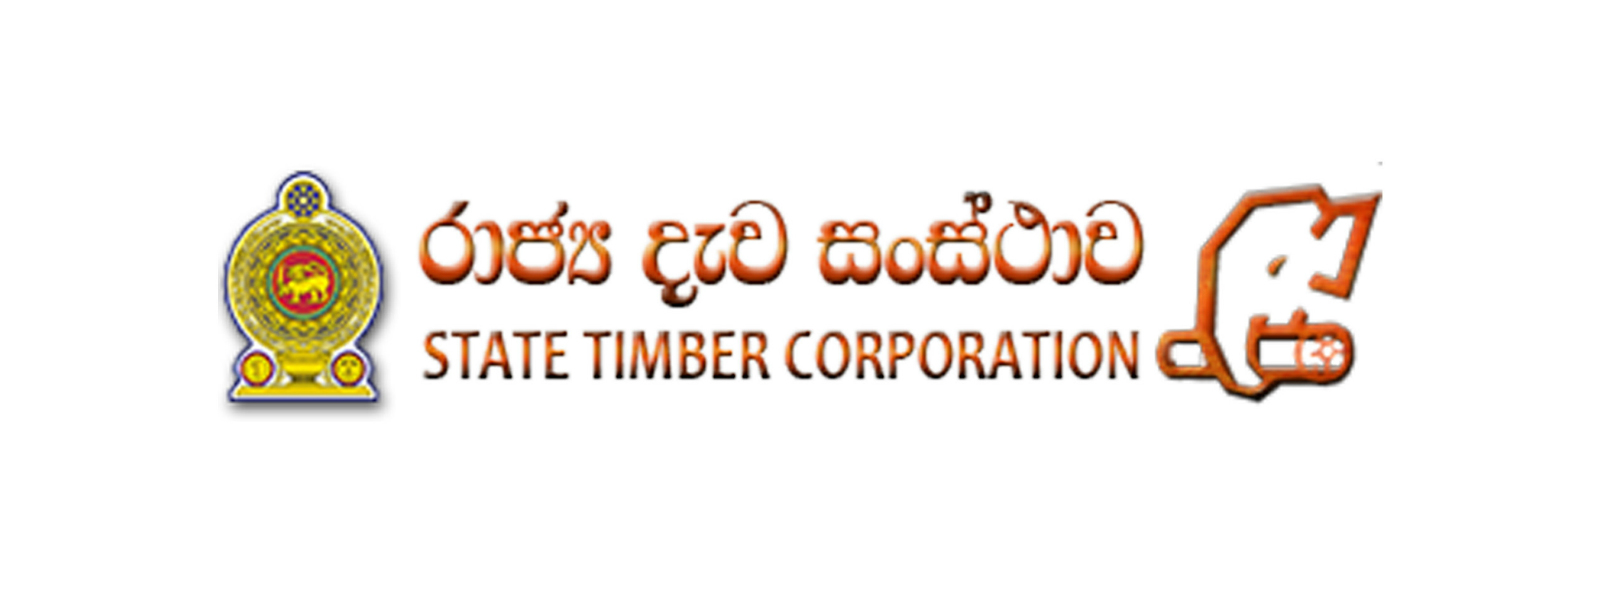 Polgampola appointed as new Chairman of State Timber Corporation